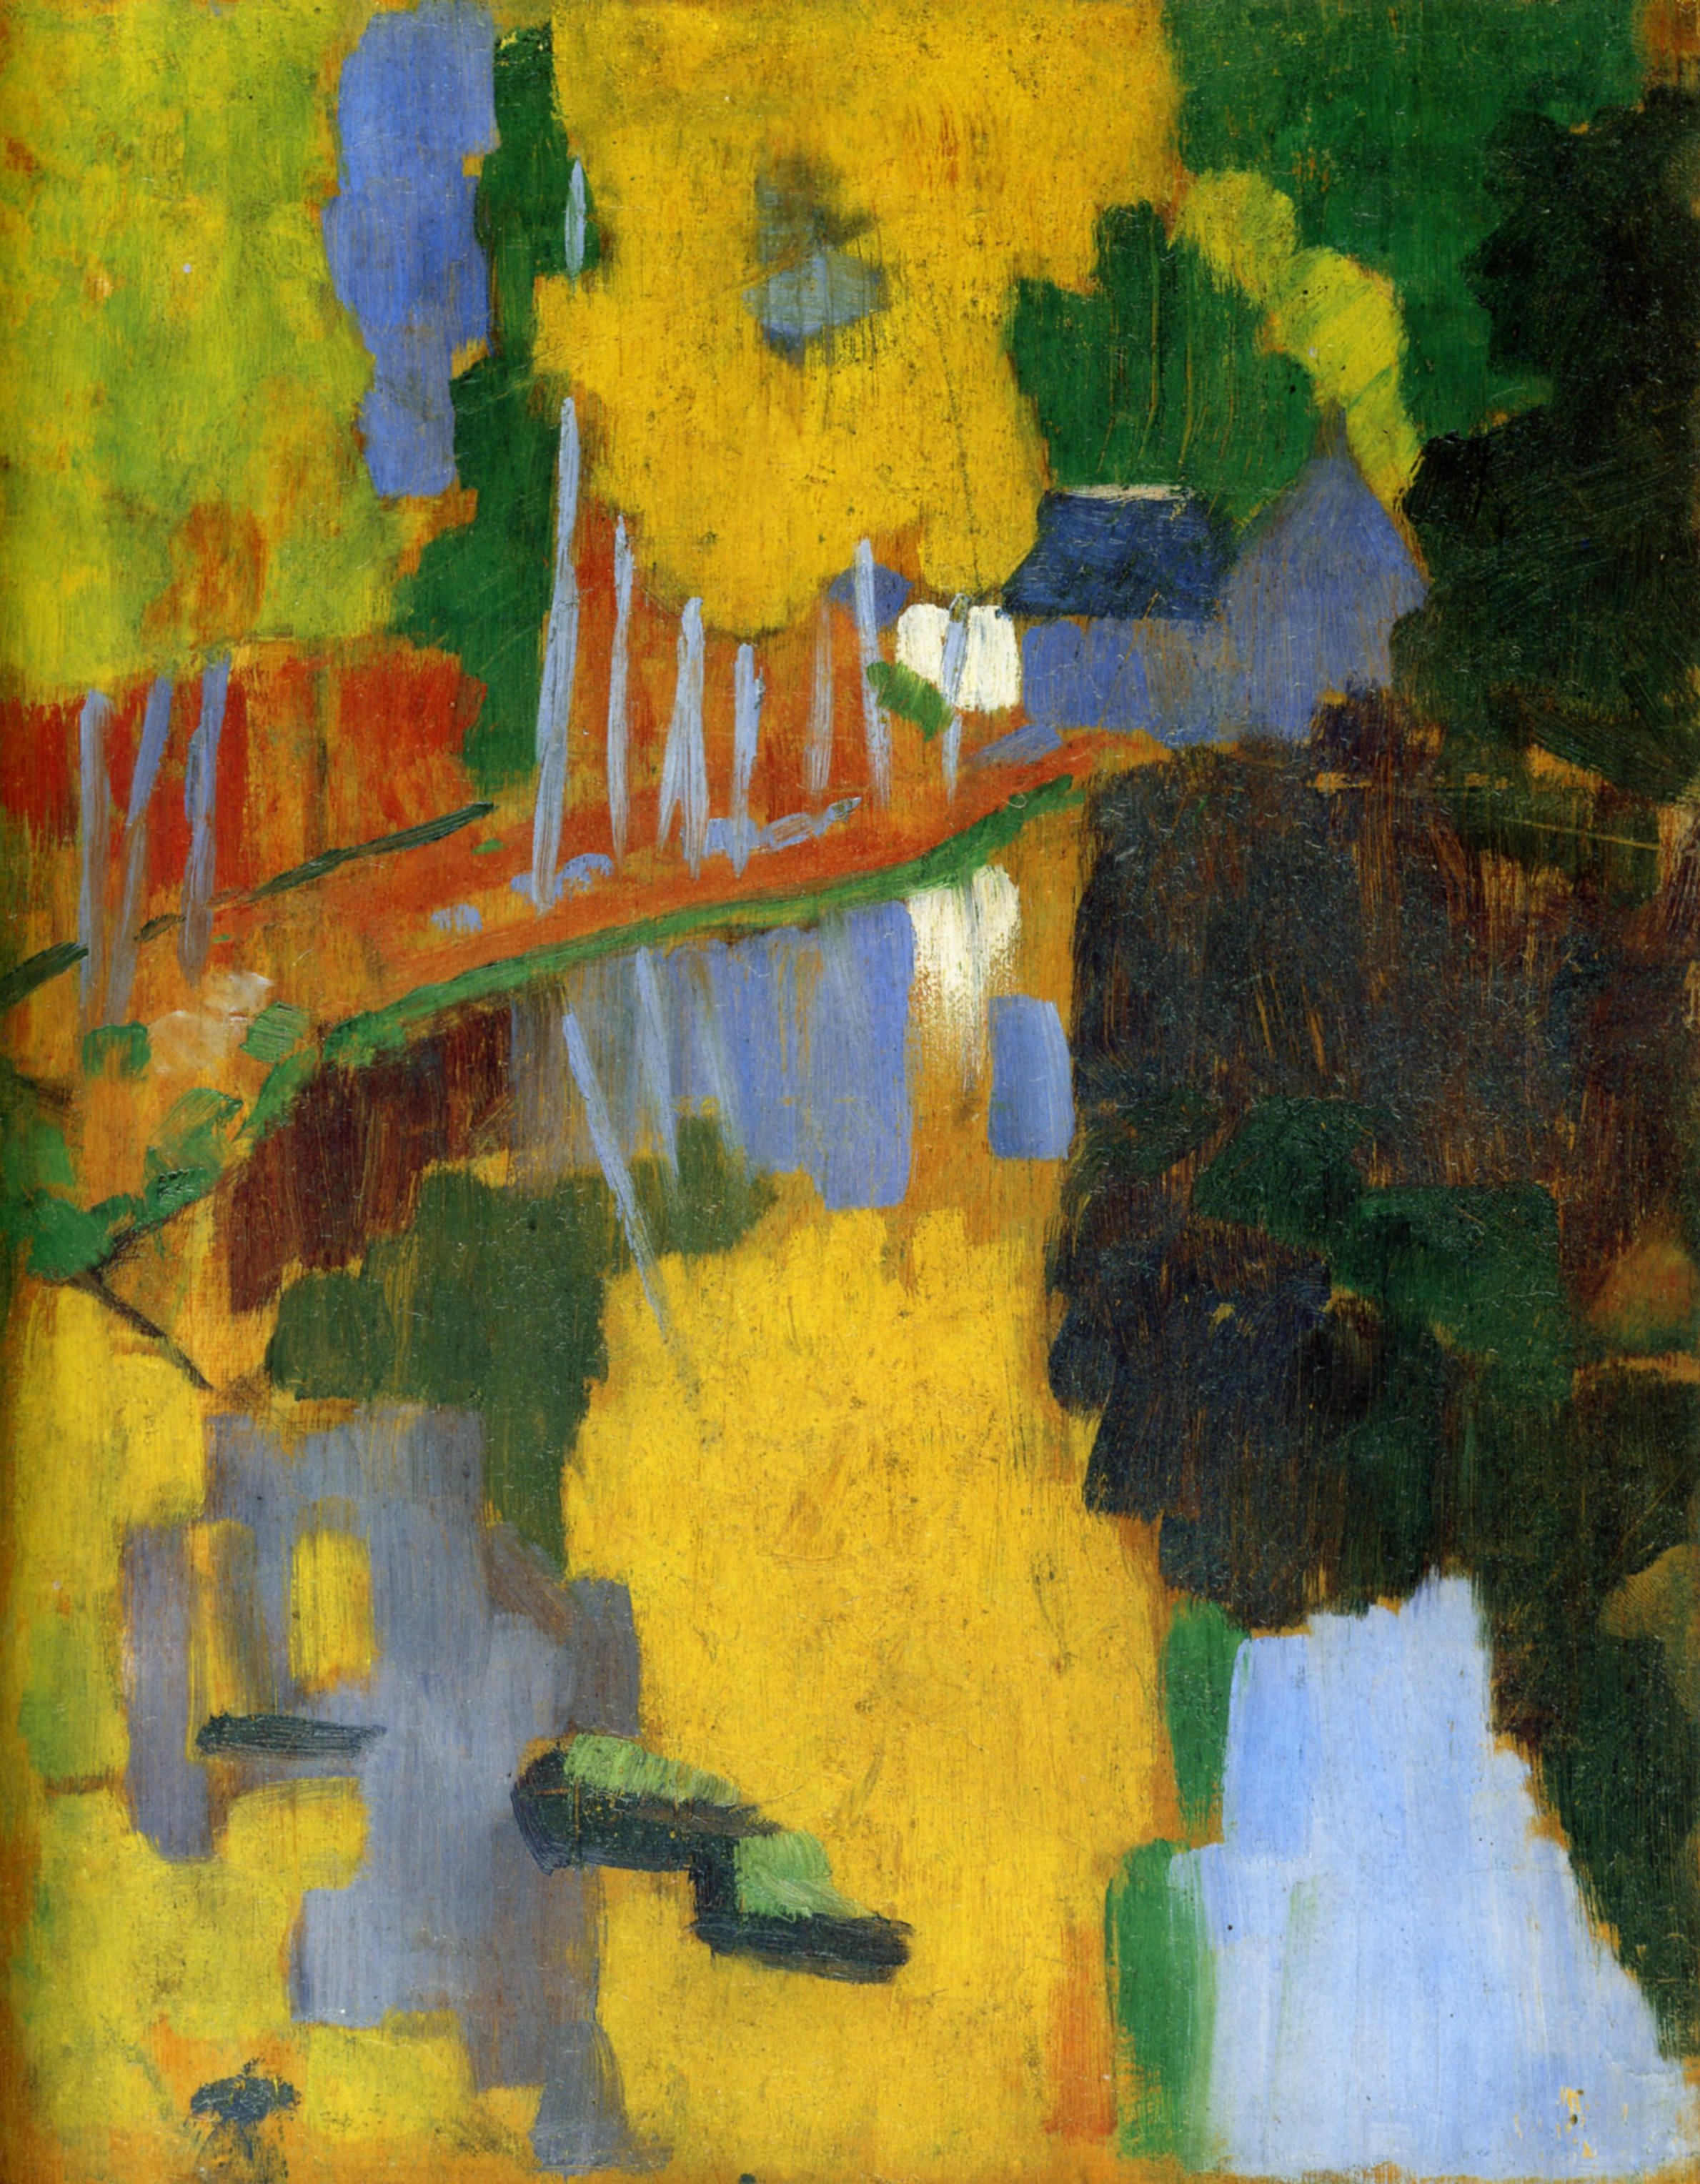 http://upload.wikimedia.org/wikipedia/commons/2/20/Serusier_-_the_talisman.JPG